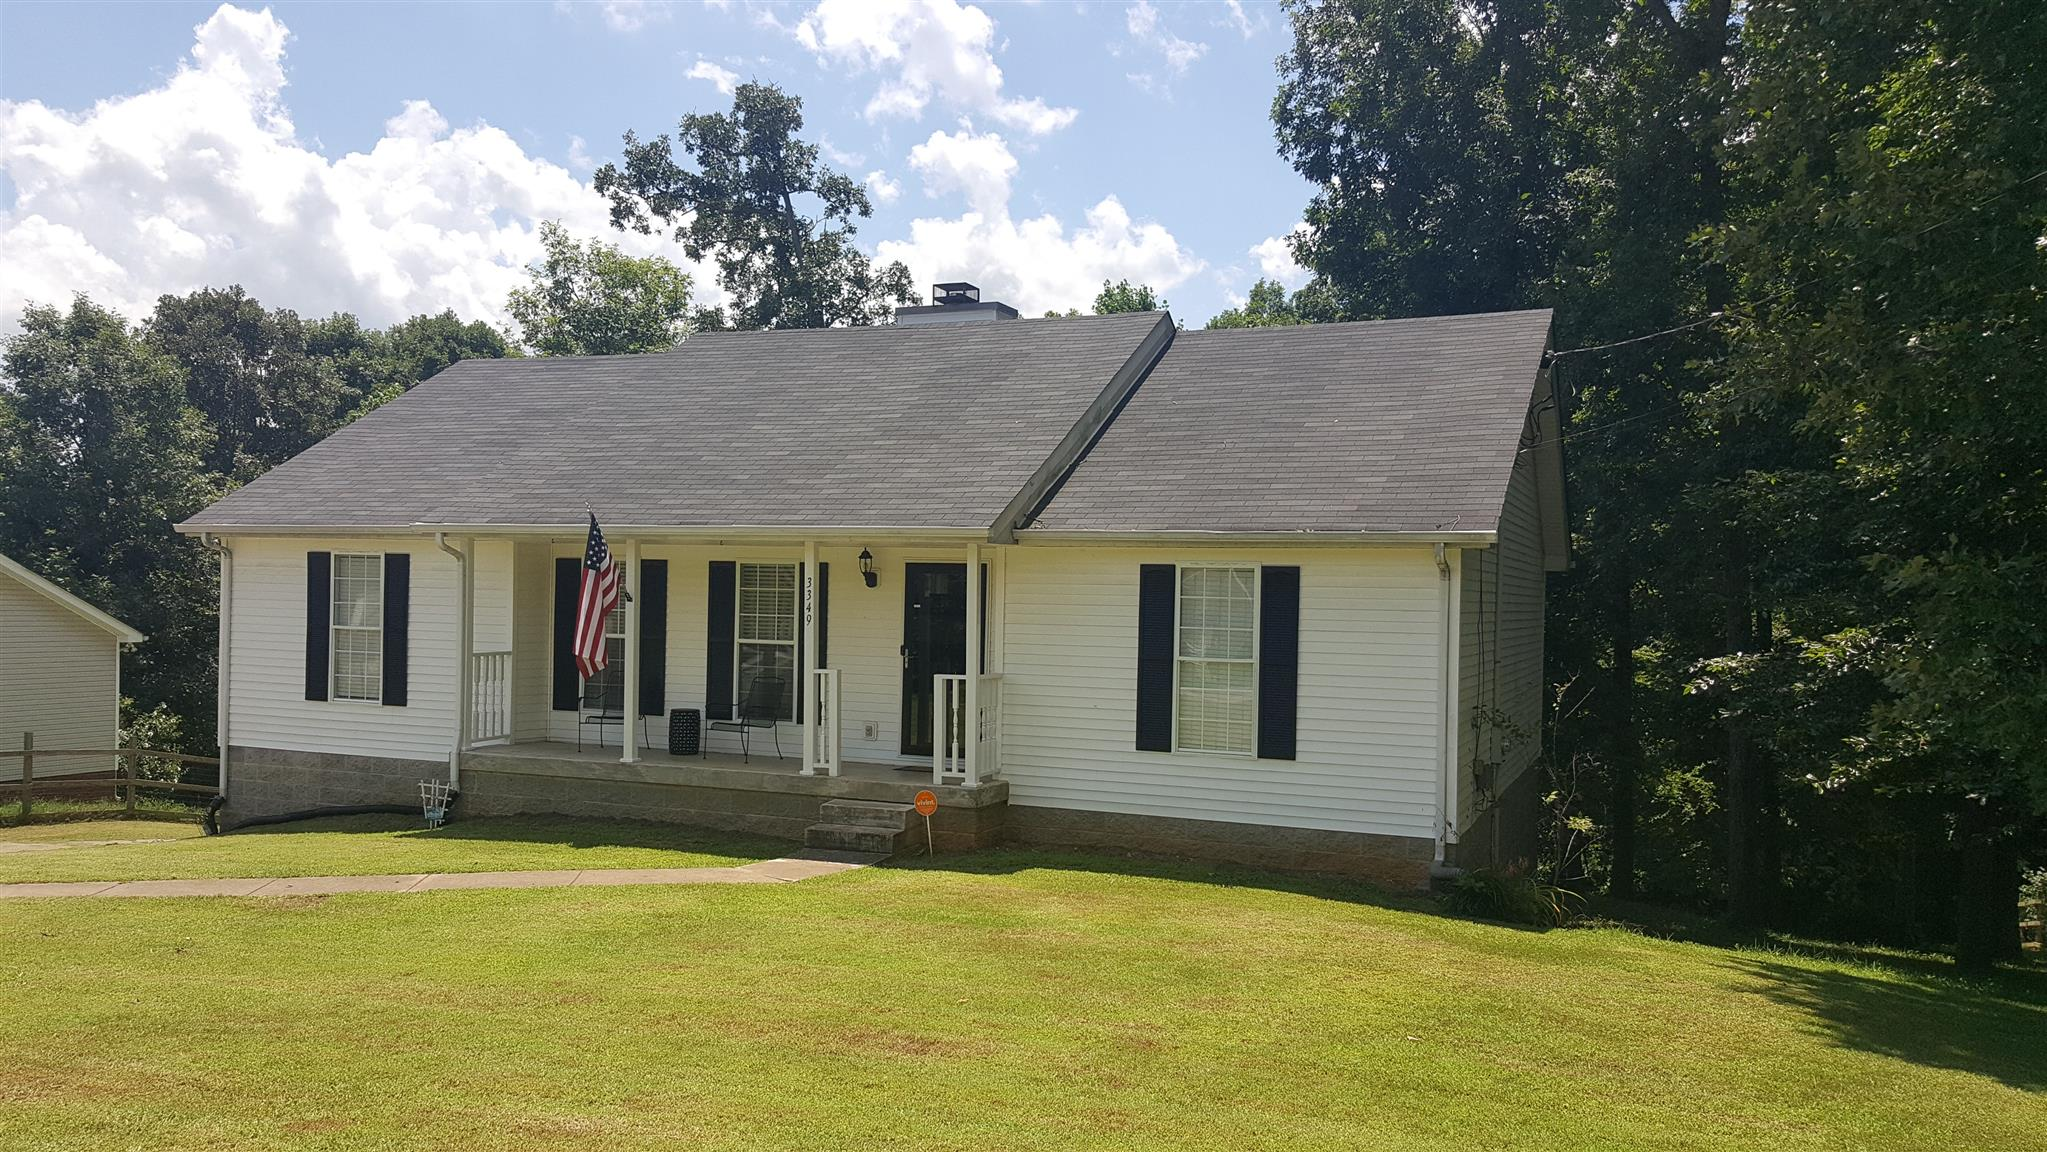 Photo of 3349 Backridge Rd  Woodlawn  TN